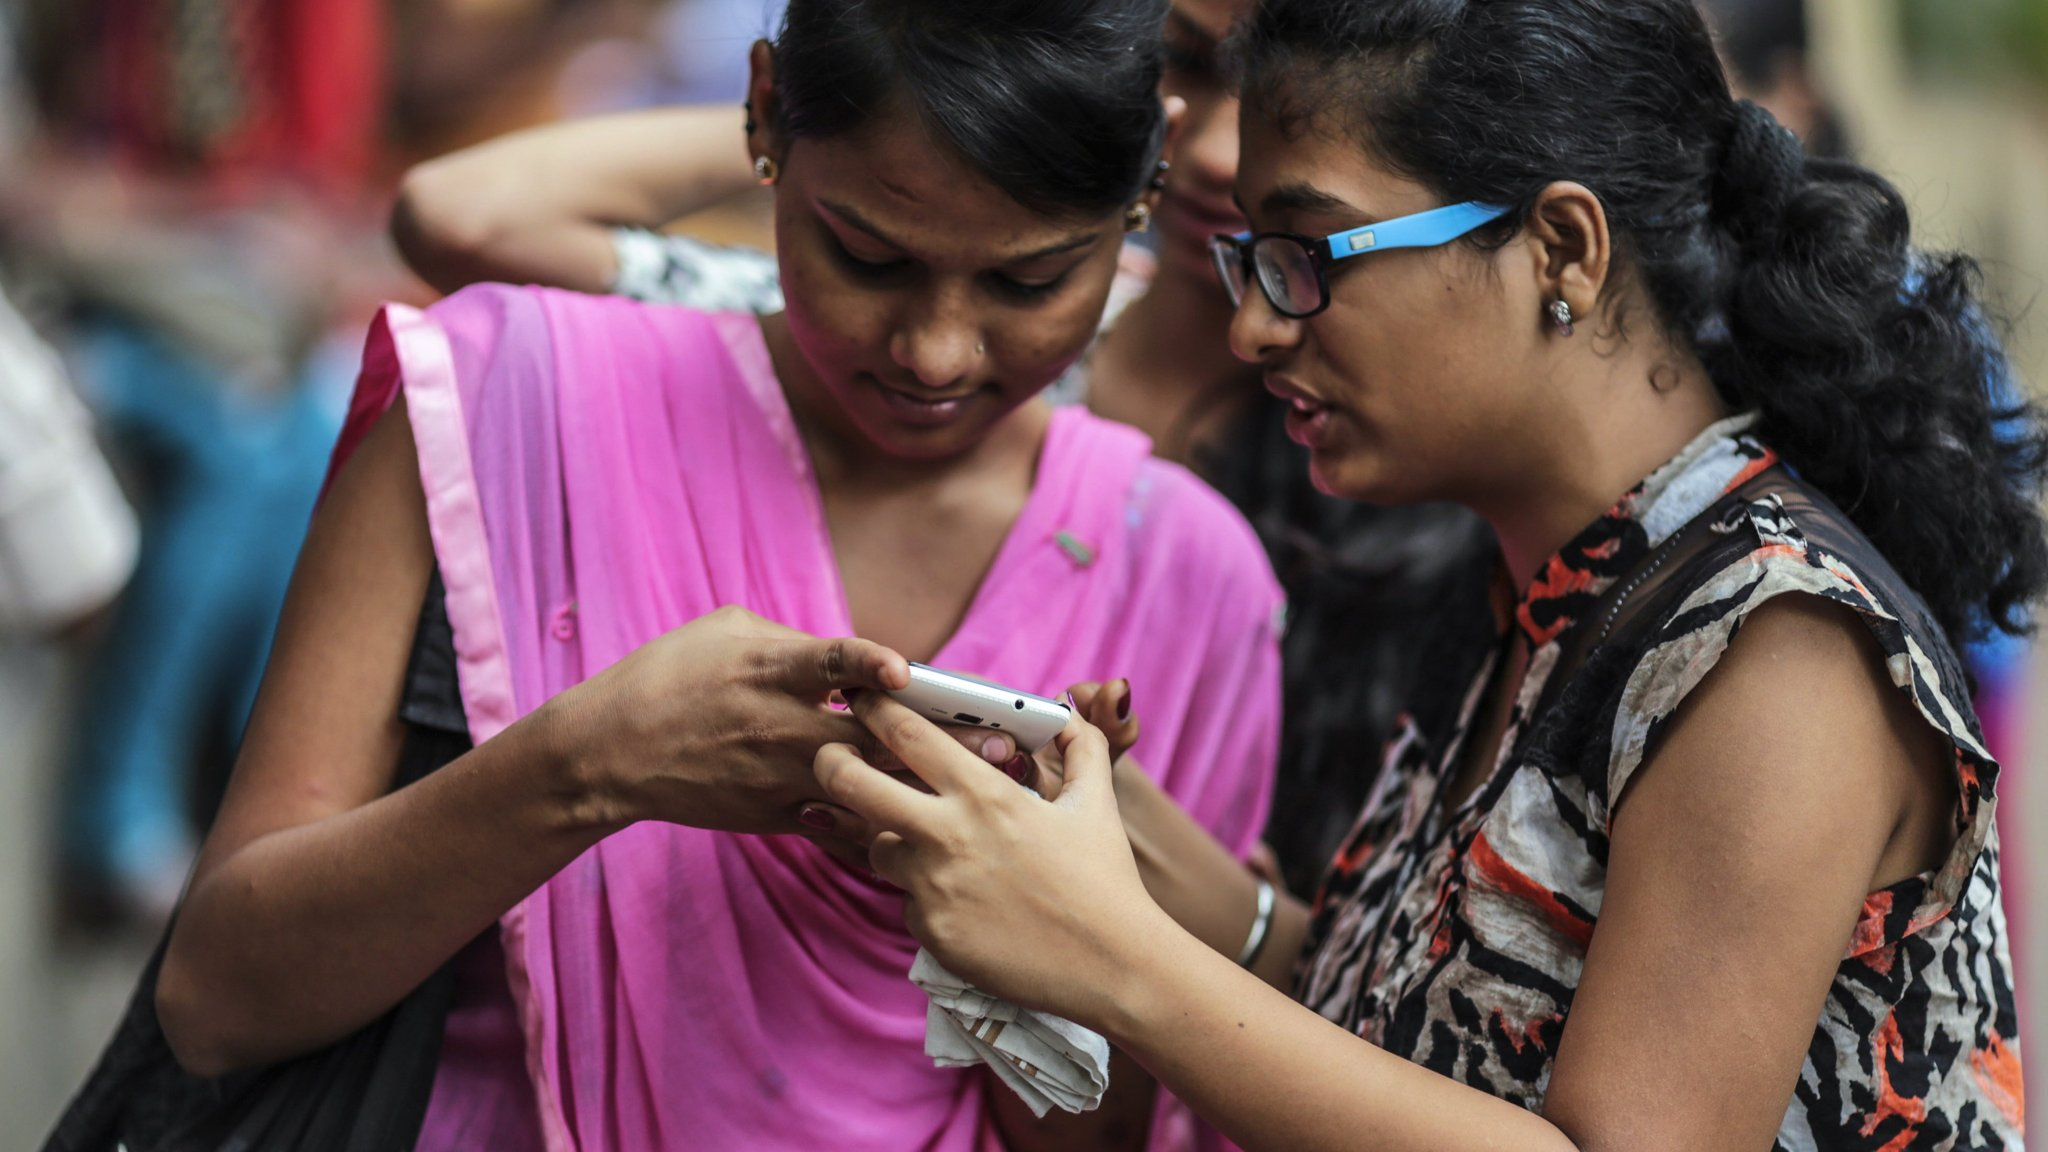 WhatsApp's push into mobile payments